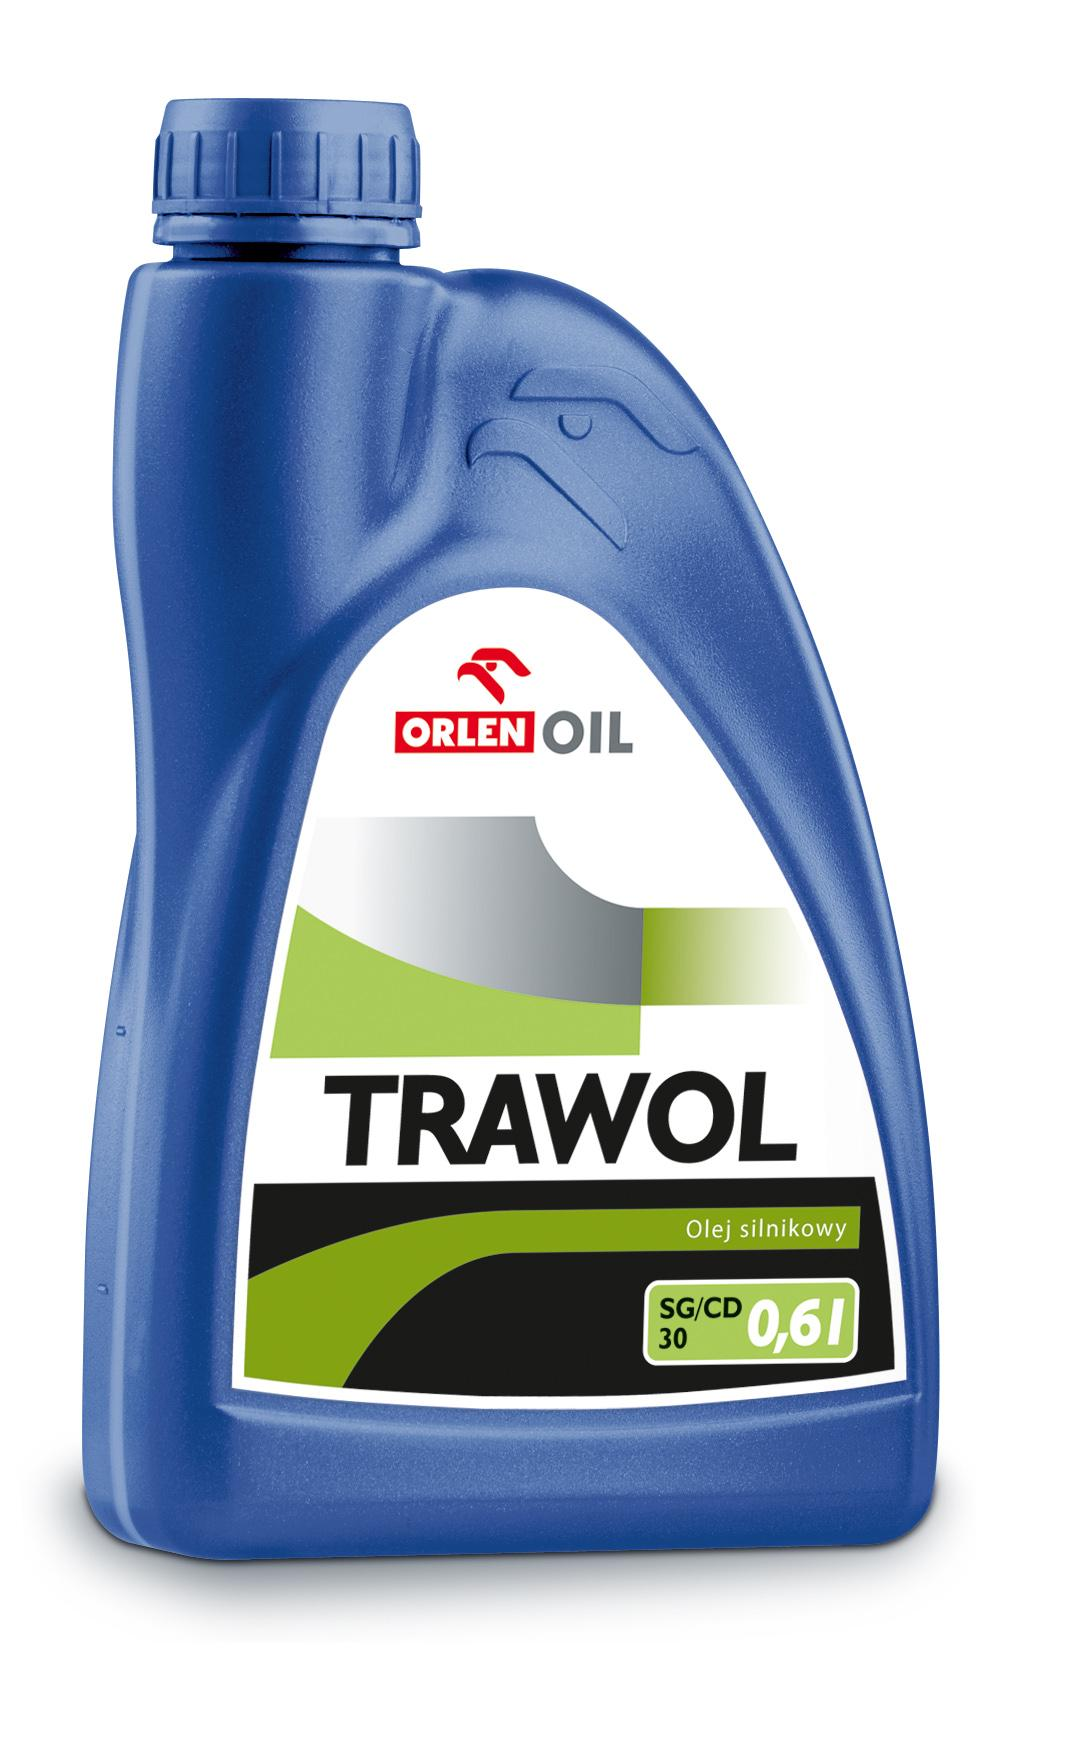 ORLEN OIL TRAWOL SG/CD  30  0,6L